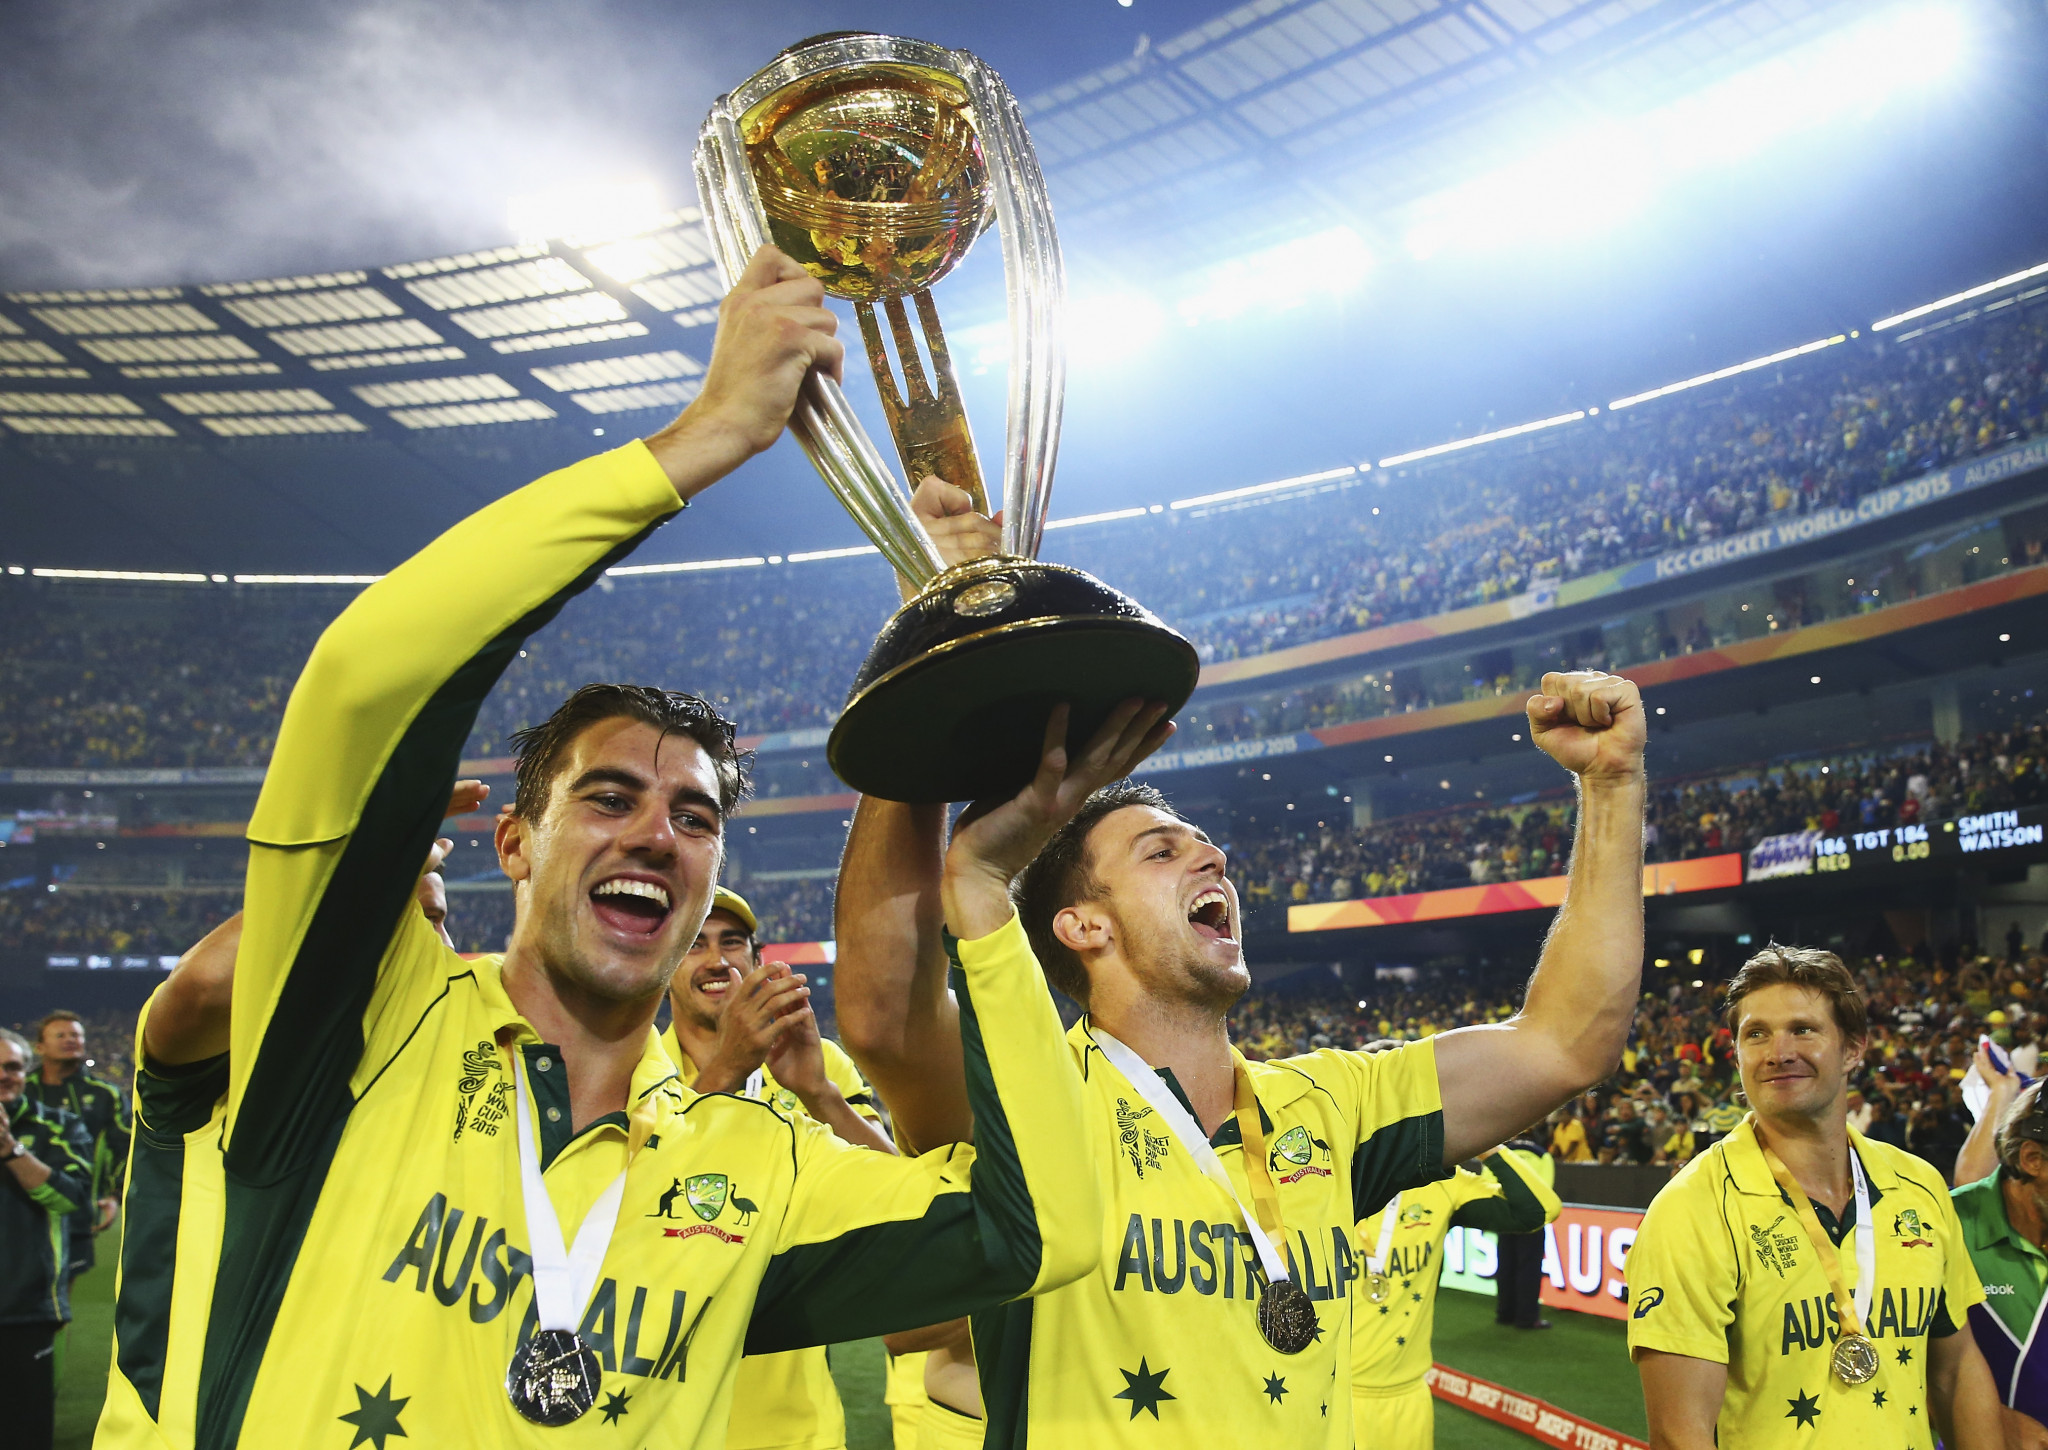 Australia triumphed at the 2015 event ©Getty Images